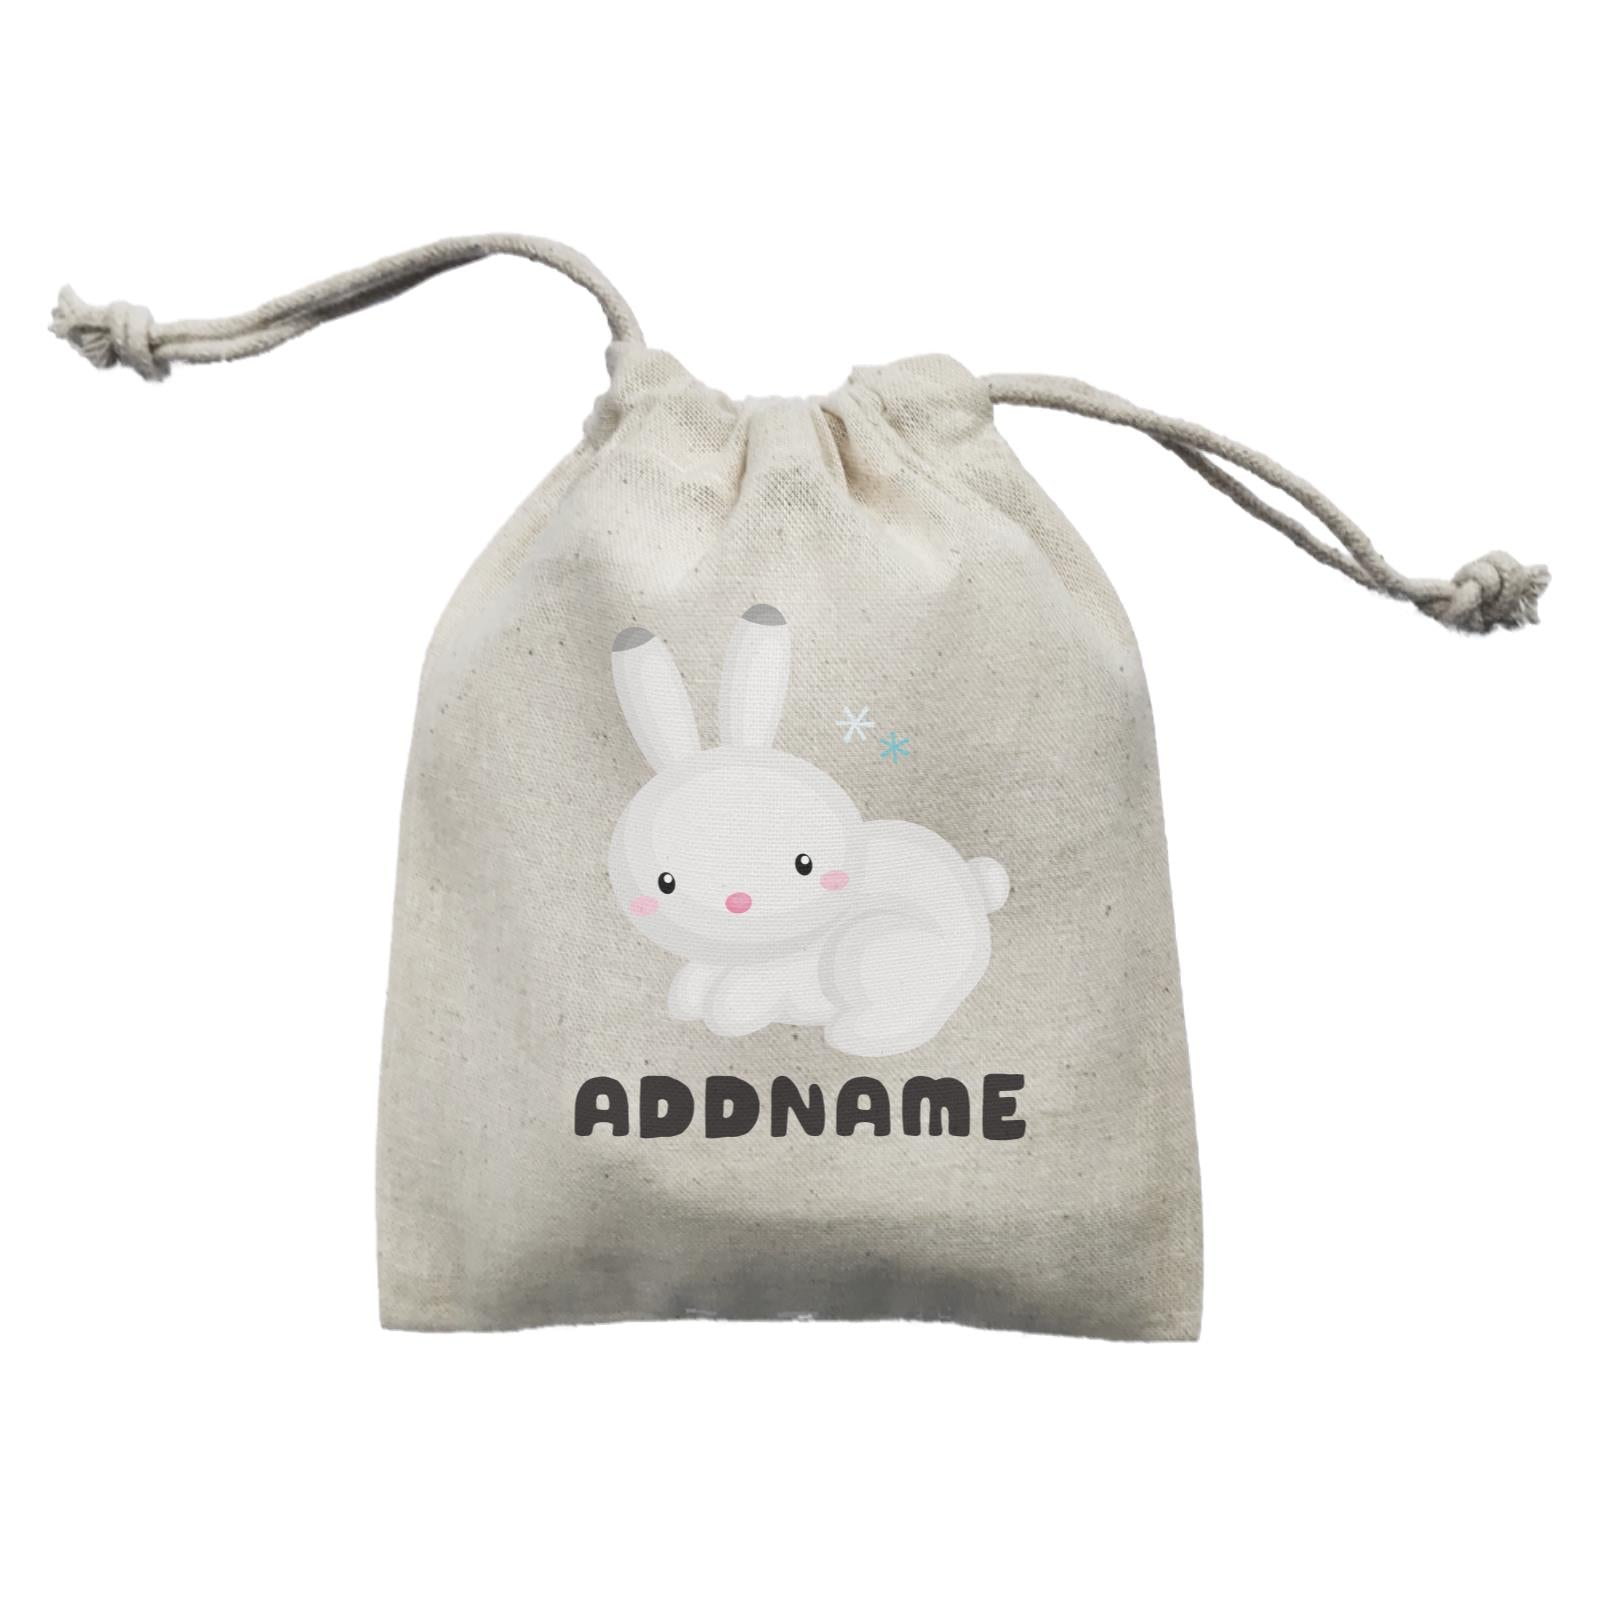 Birthday Winter Animals Snow Rabbit Addname Mini Accessories Mini Pouch